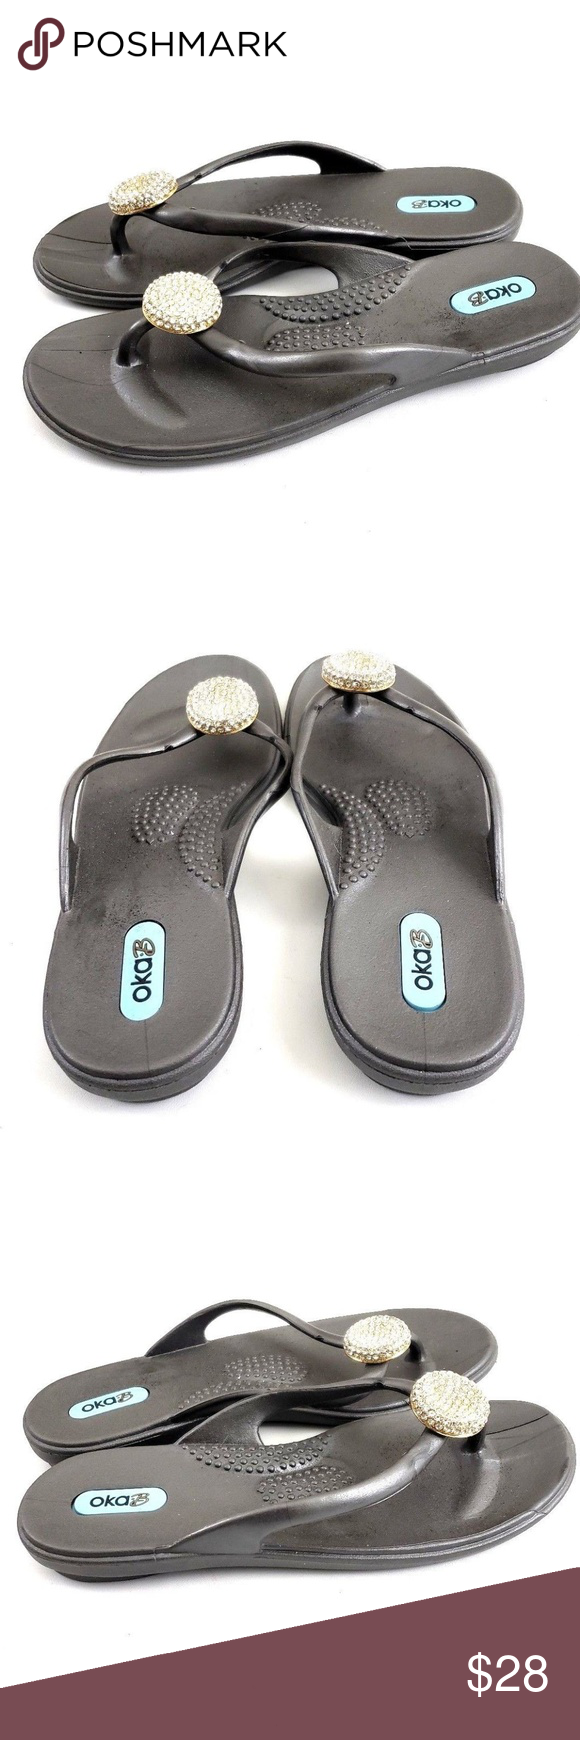 e9cecd6e330f8 Oka-B Womens Lucky Silver Twilight Color Sandals You are buying a pair of  Oka-B Shoes Style  Flip Flops Color  Twilight Size  Small Condition  New  without ...